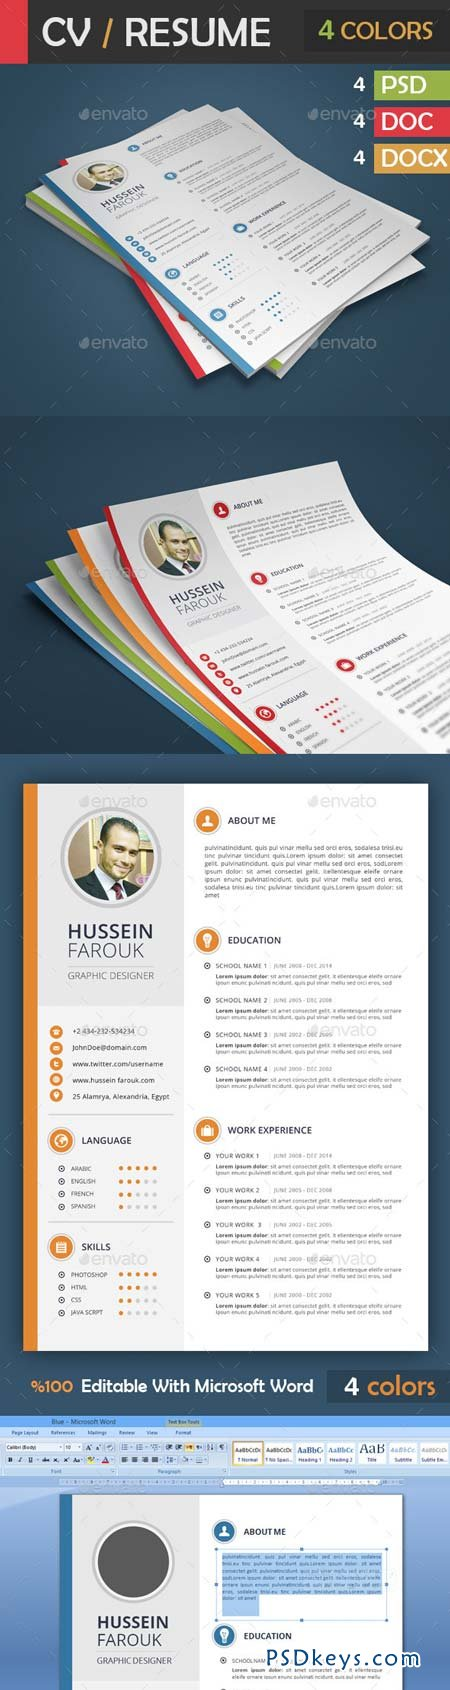 cv resume 9100148  u00bb free download photoshop vector stock image via torrent zippyshare from